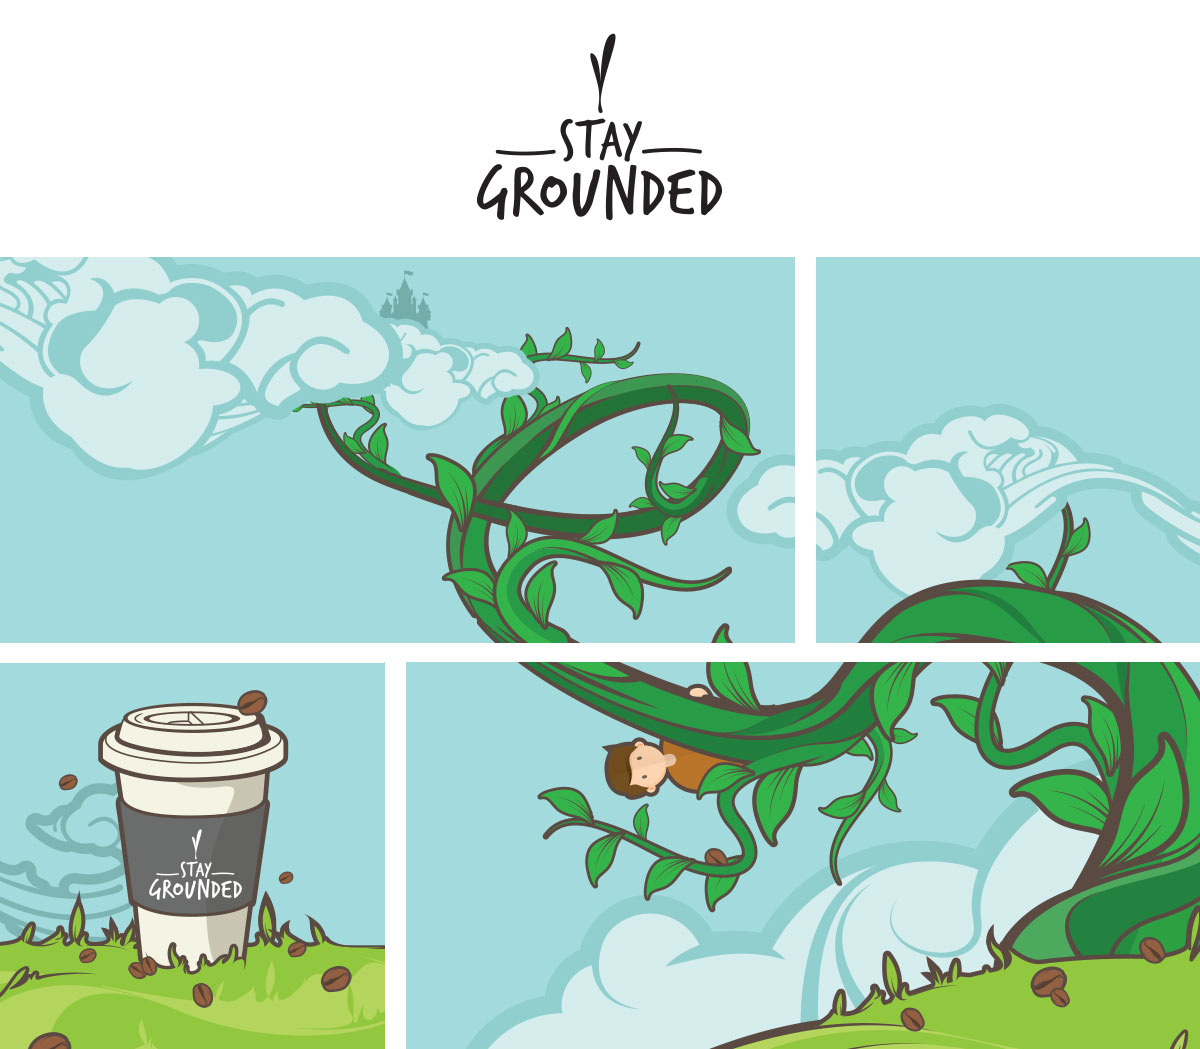 Stay_grounded.jpg